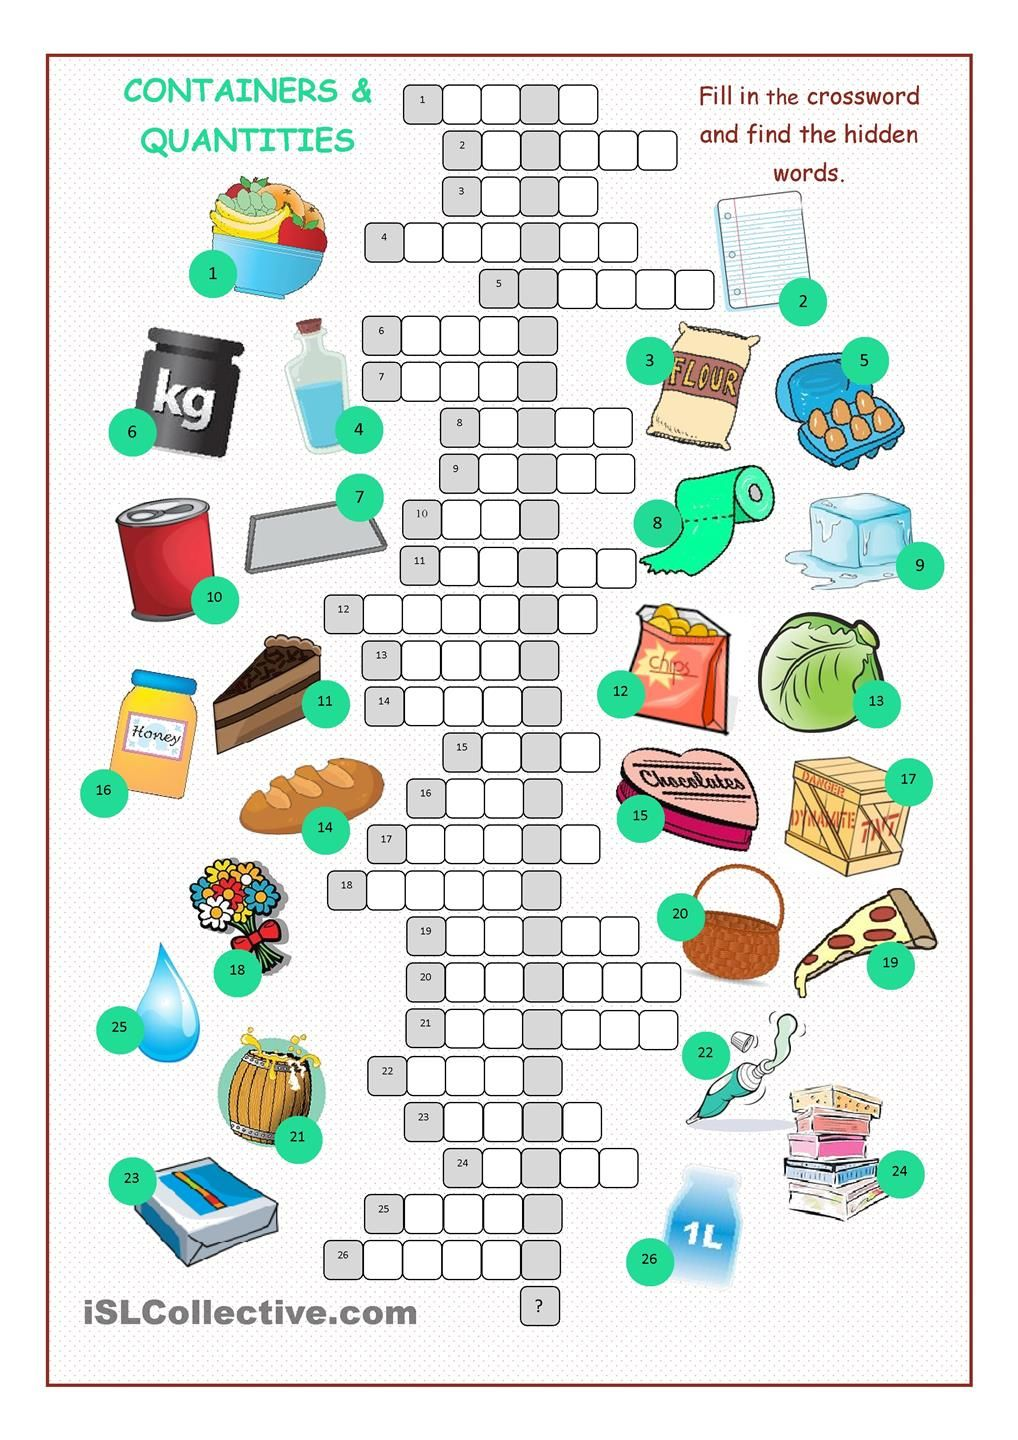 Crossword Puzzle Gallery Containers Quantities Food Pinterest Of On Jymba